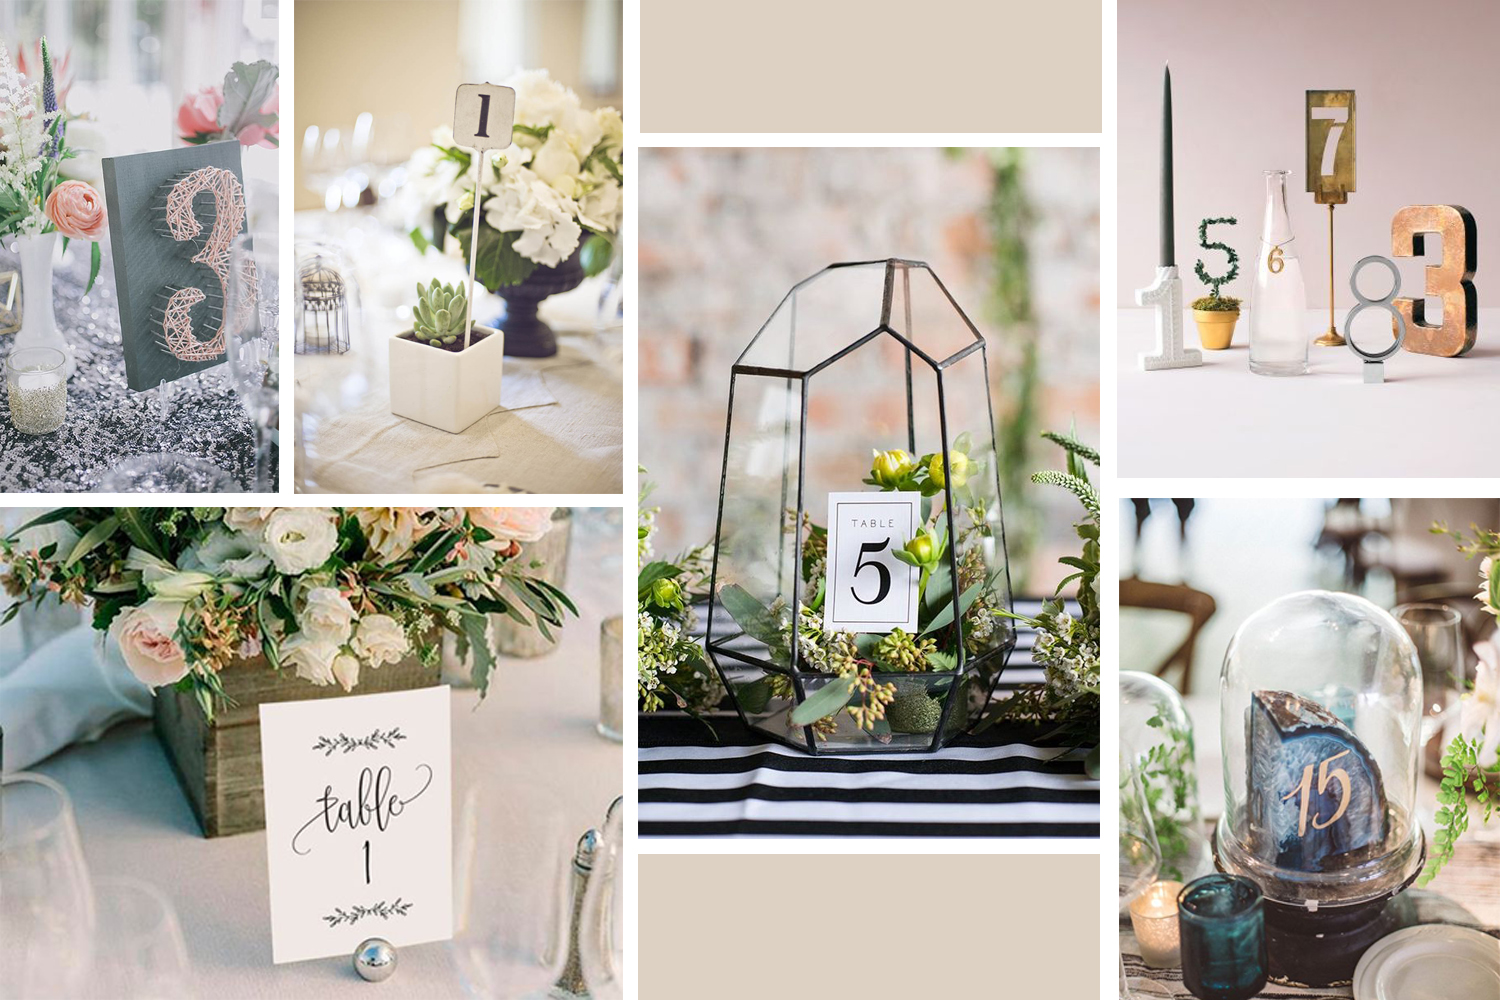 Creative Ideas For Table Settings Willow Visuals